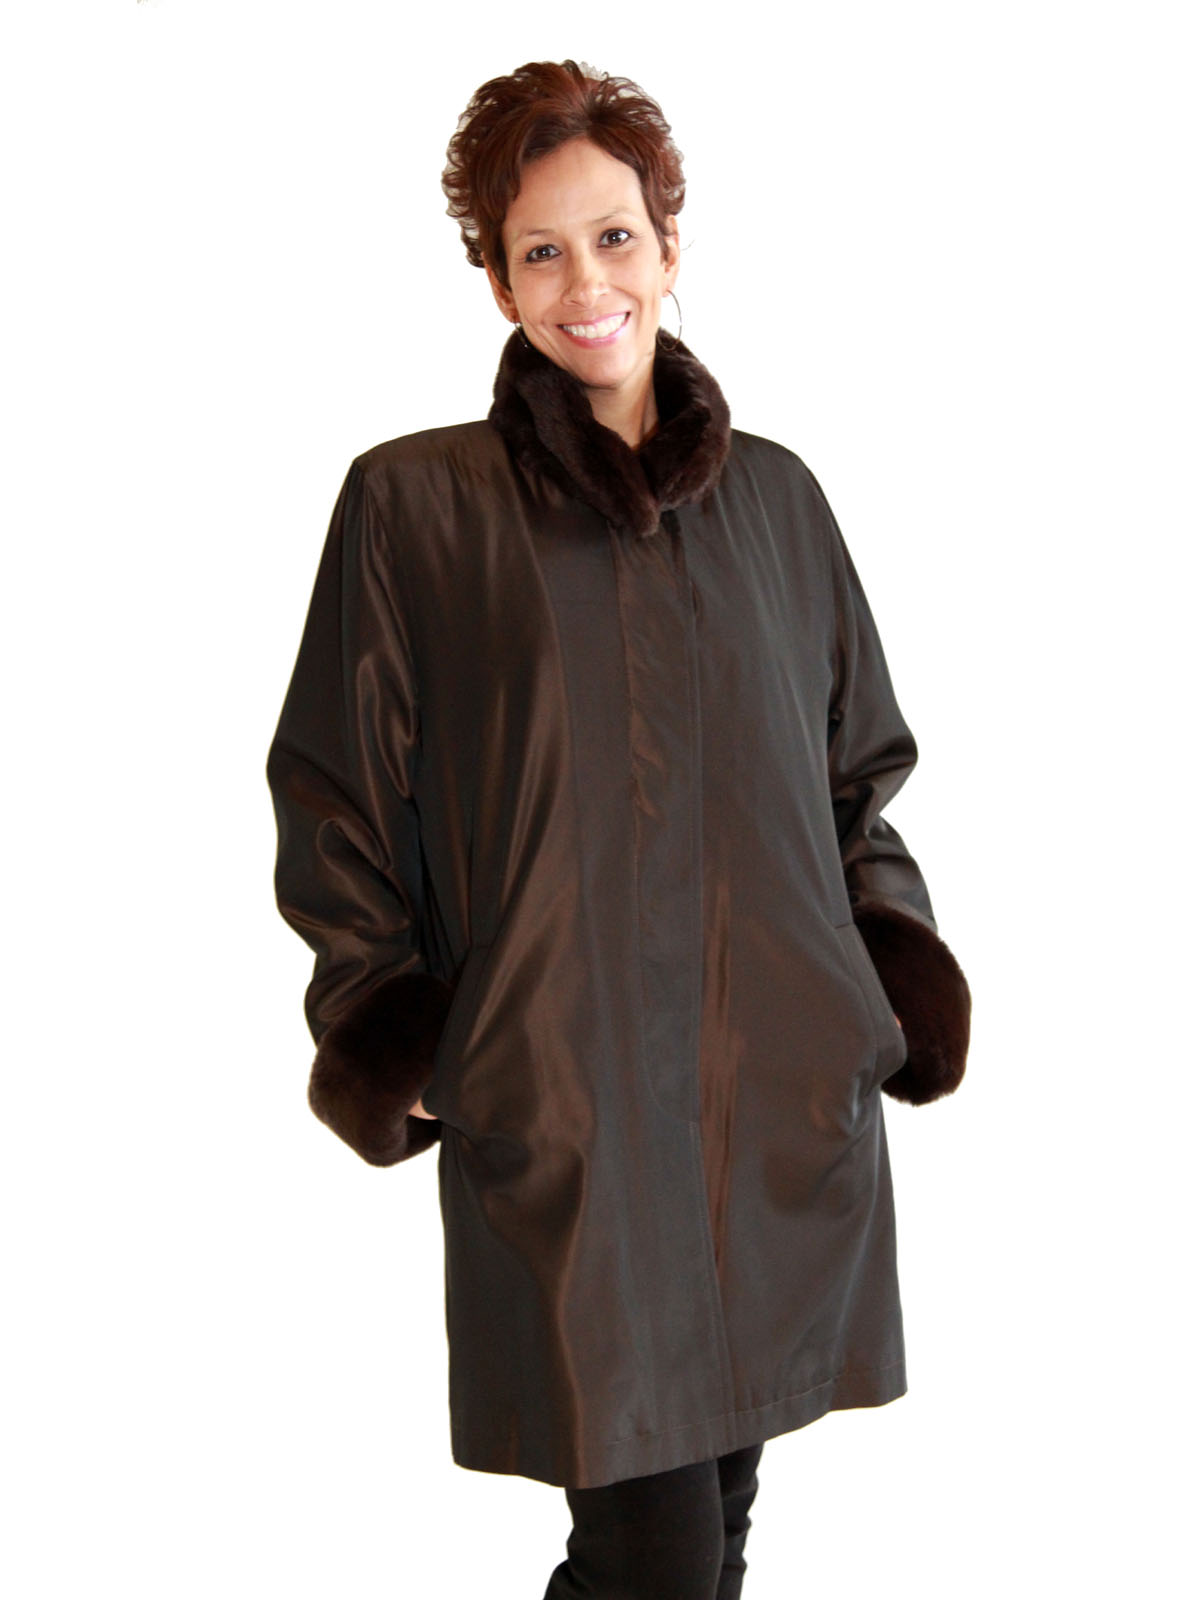 NEW Brown Taffeta Rain Silk Jacket with Rex Rabbit Collar, Cuffs, and Liner